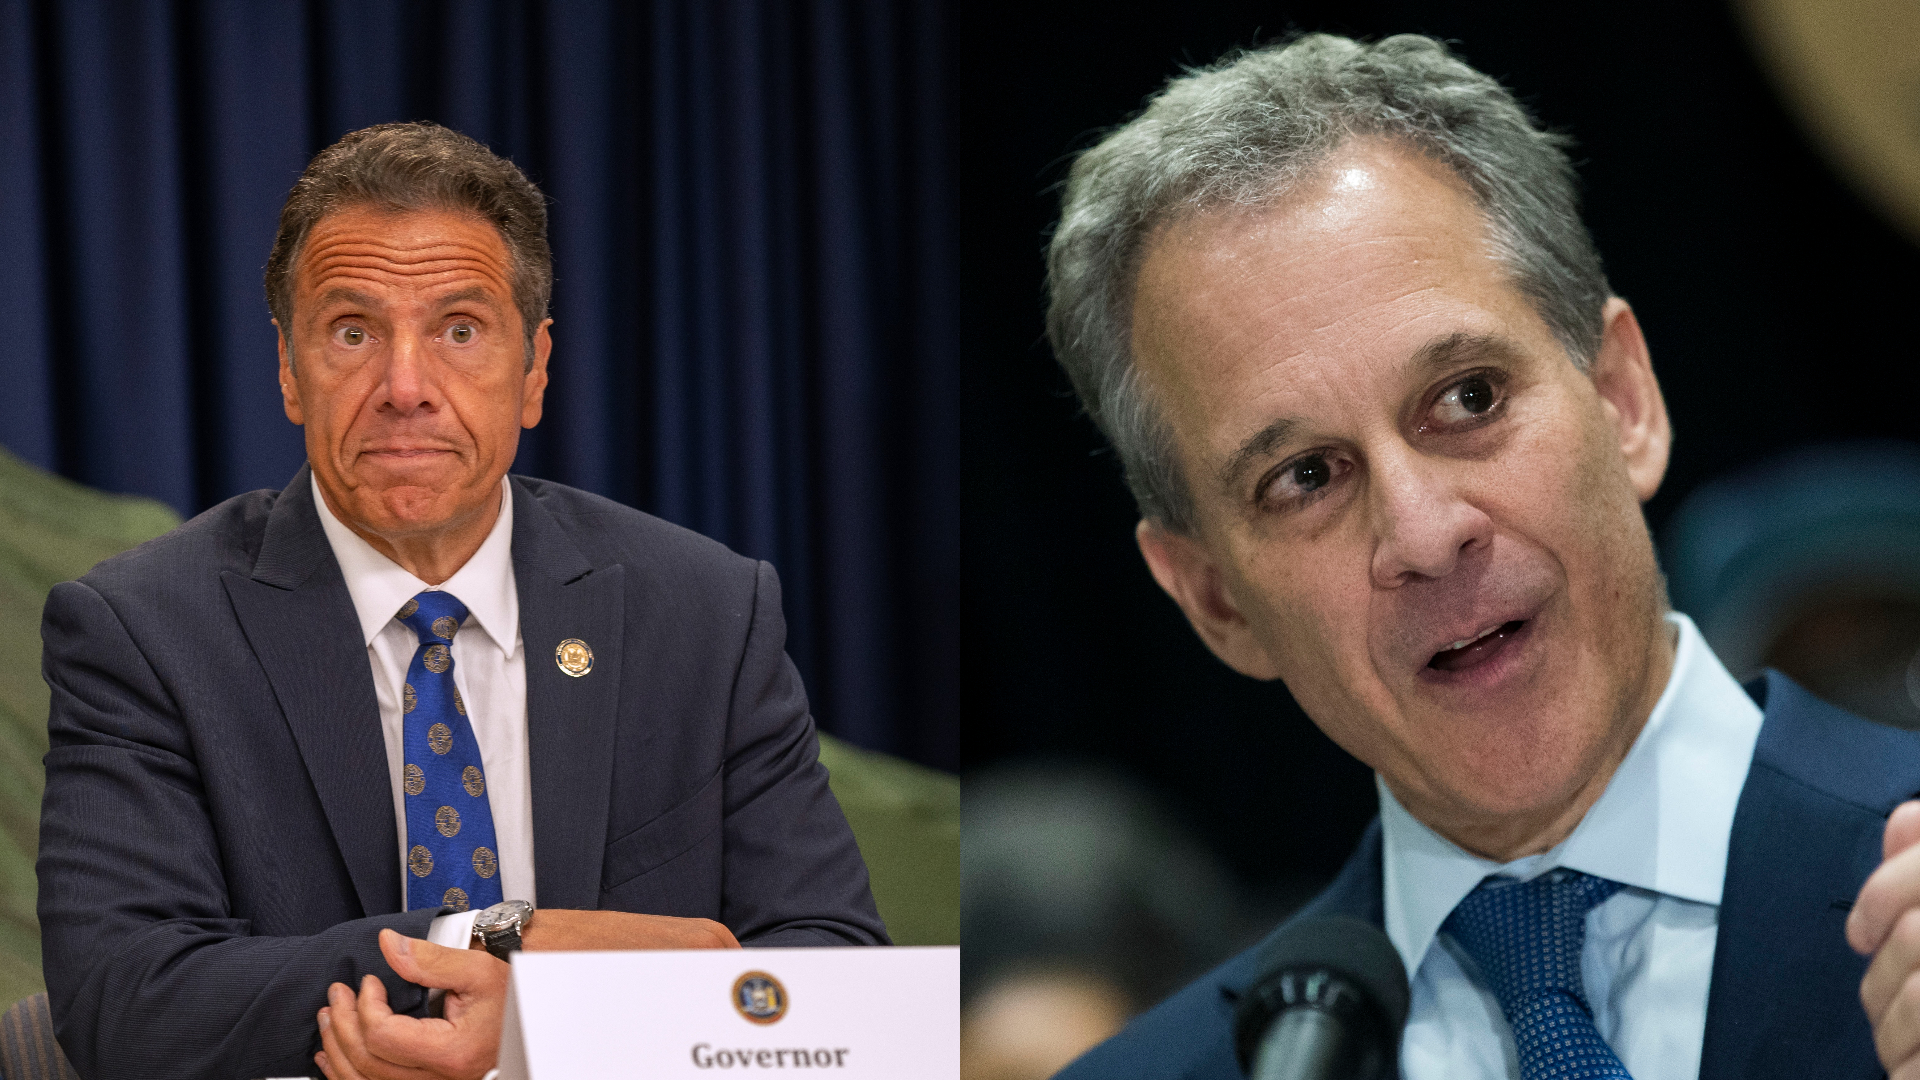 Multiple New York lawmakers call for Cuomo to resign as governor